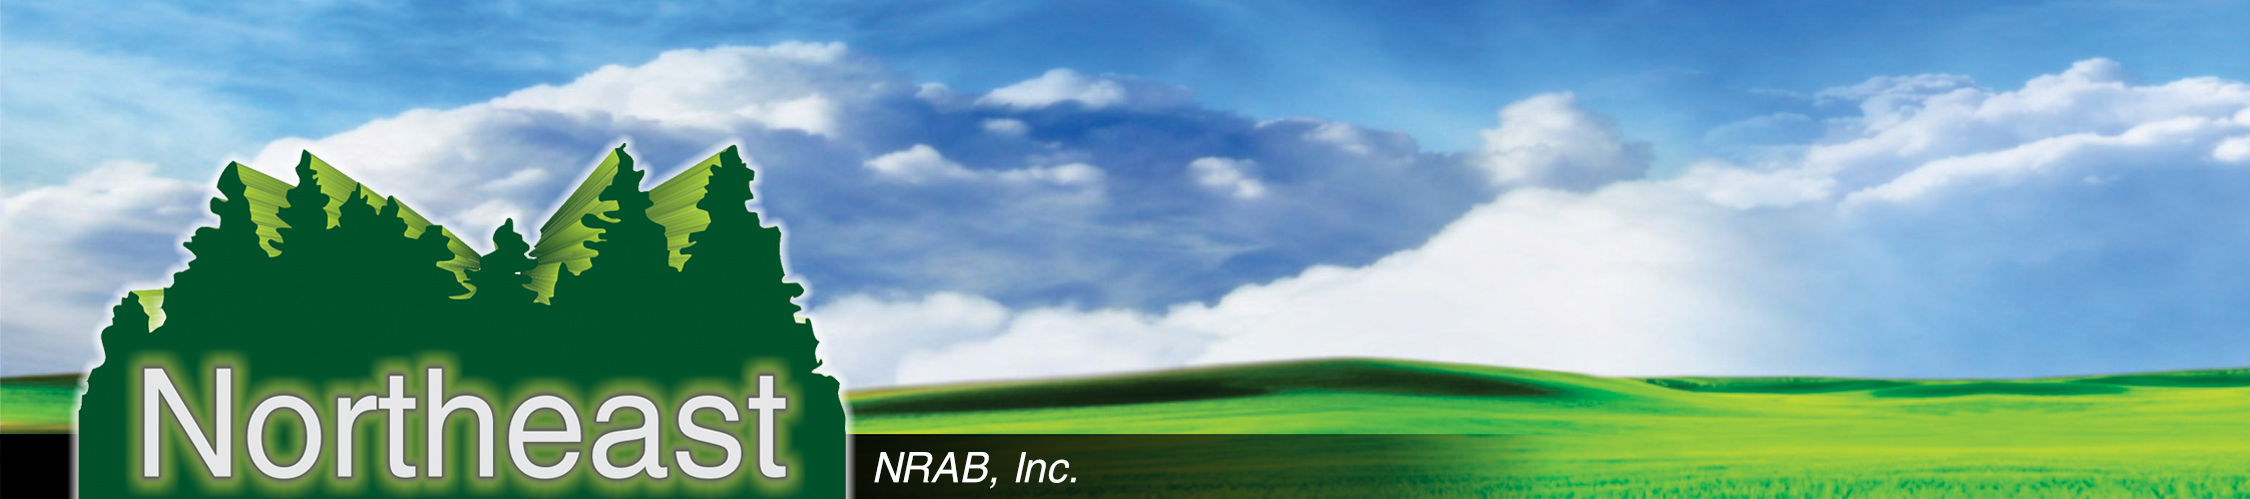 Northeast NRAB Website Header